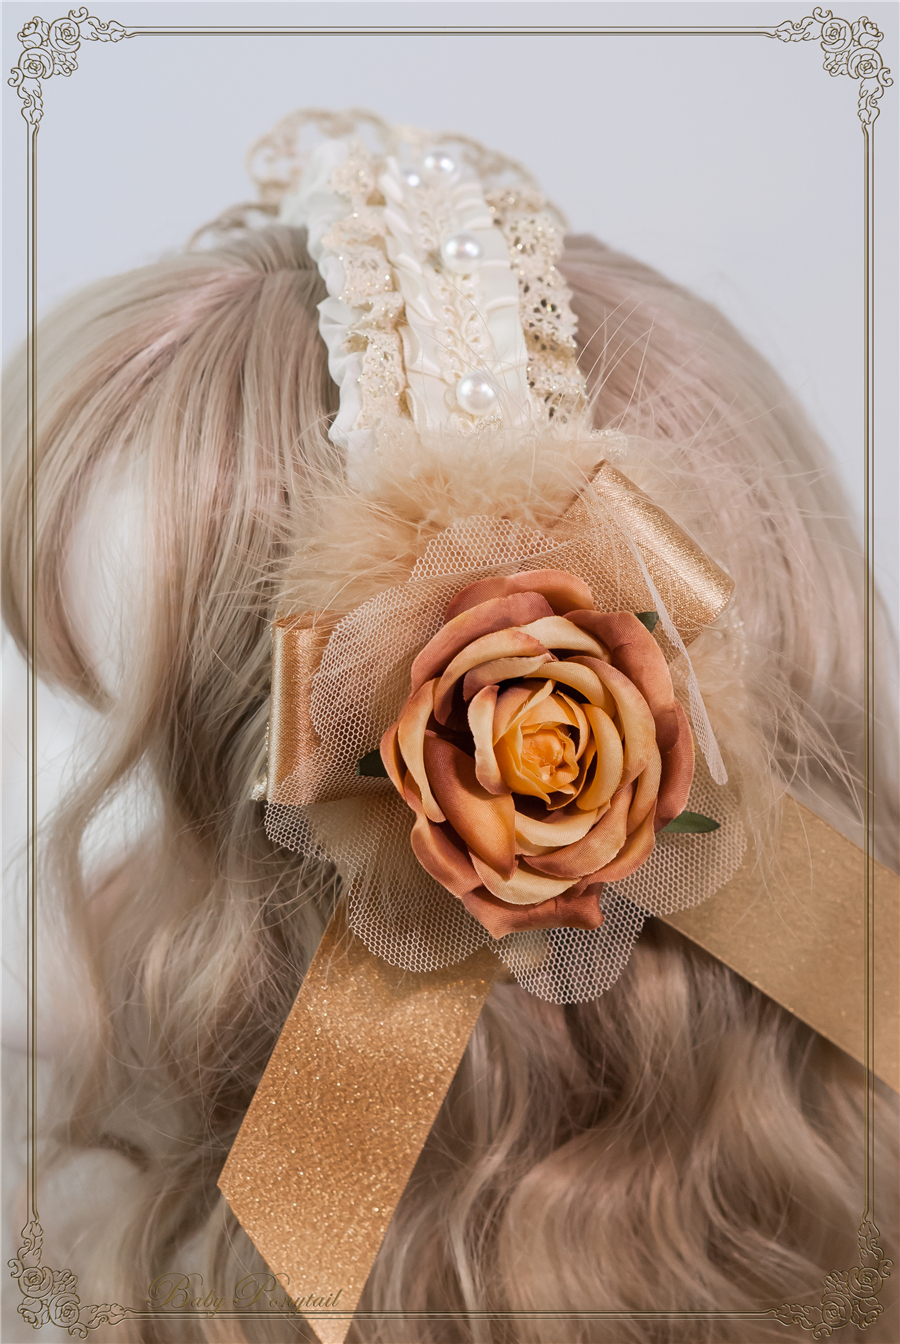 Baby Ponytail_Stock photo_Circus Princess_Rose Head Dress Golden_02.jpg